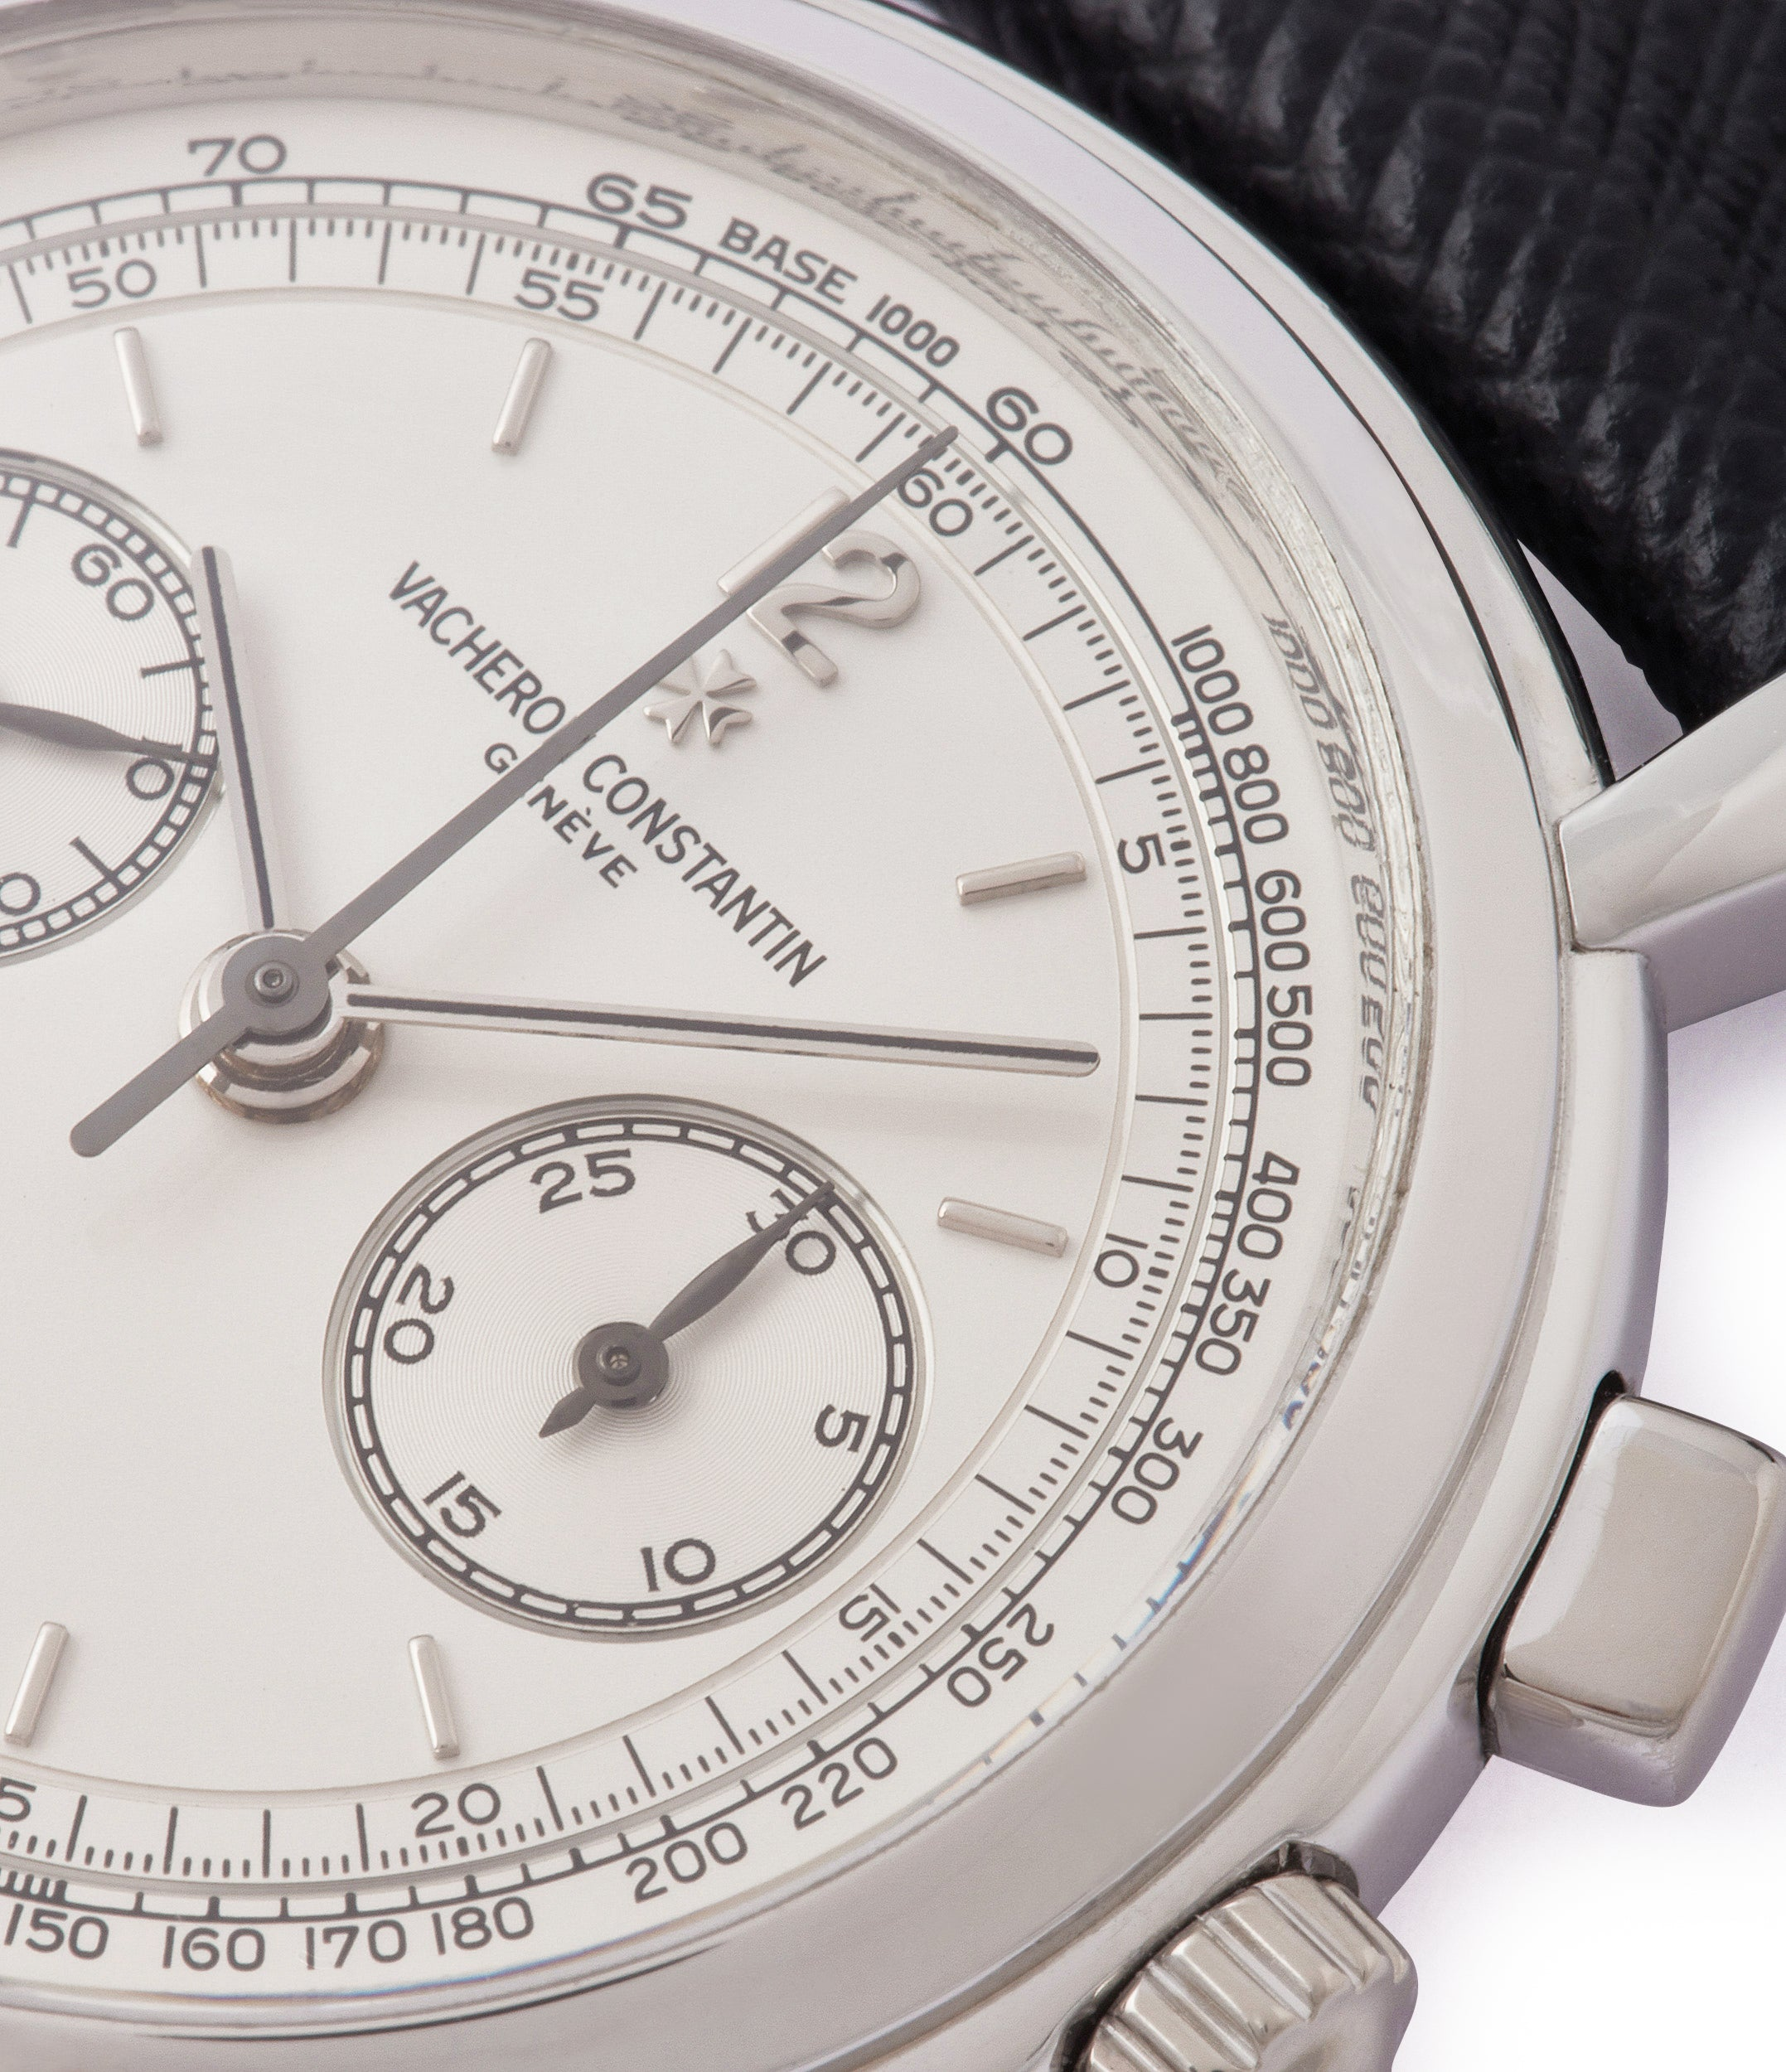 silver dial Vacheron Constantin Chronograph Les Historique 47101/1  manual-winding luxury dress watch for sale online at A Collected Man London UK specialist of rare watches